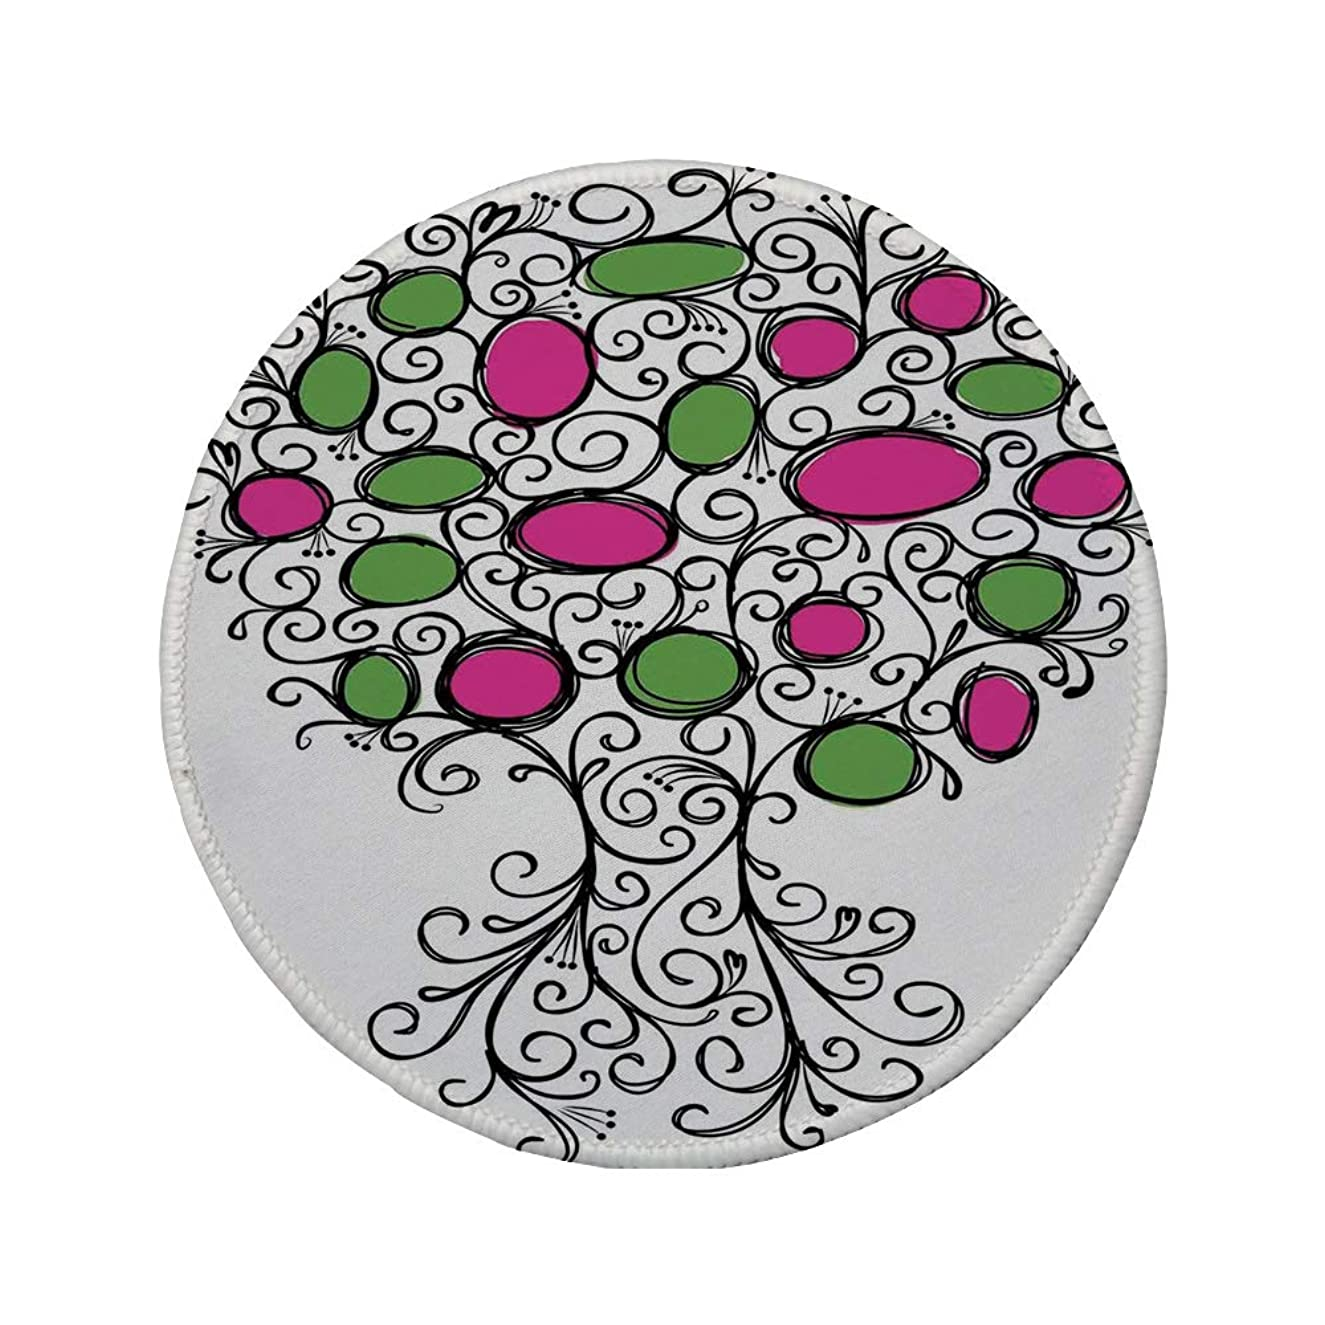 Non-Slip Rubber Round Mouse Pad,Tree of Life,OrnateTree with Curving Roots and Branches Colored Fruits Growing Living Home,Pink Green Black,11.8